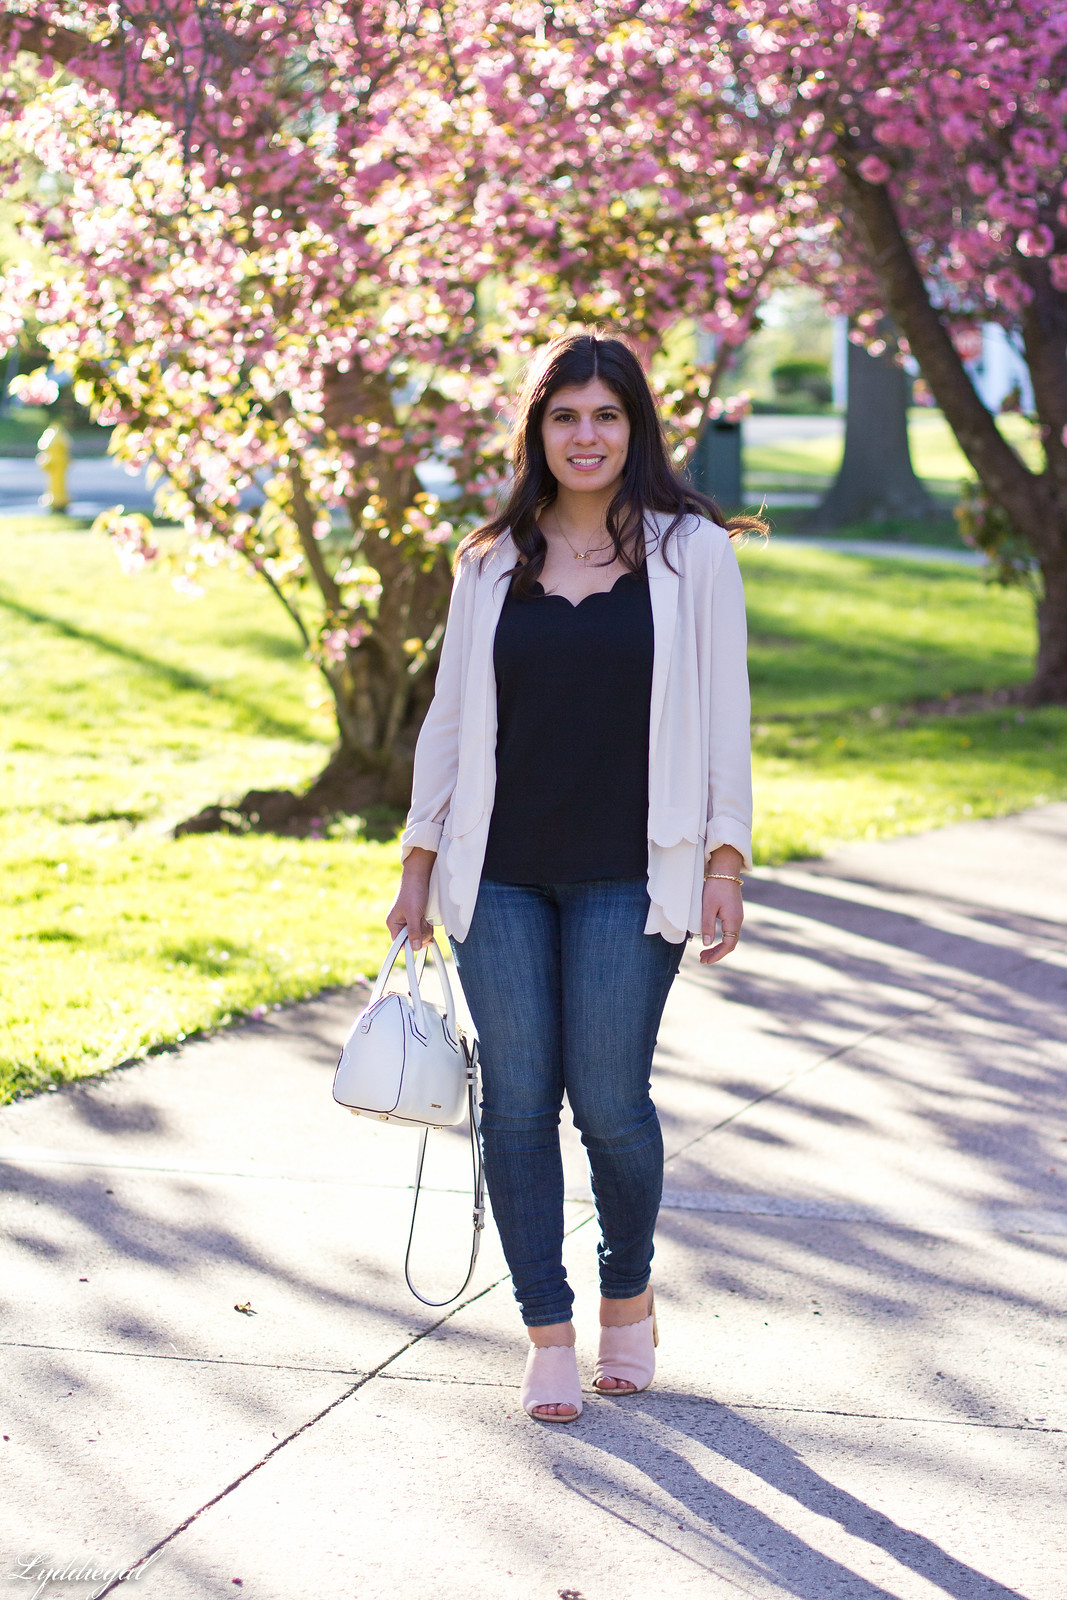 scalloped blazer, camisole, mules, spring outfit-4.jpg